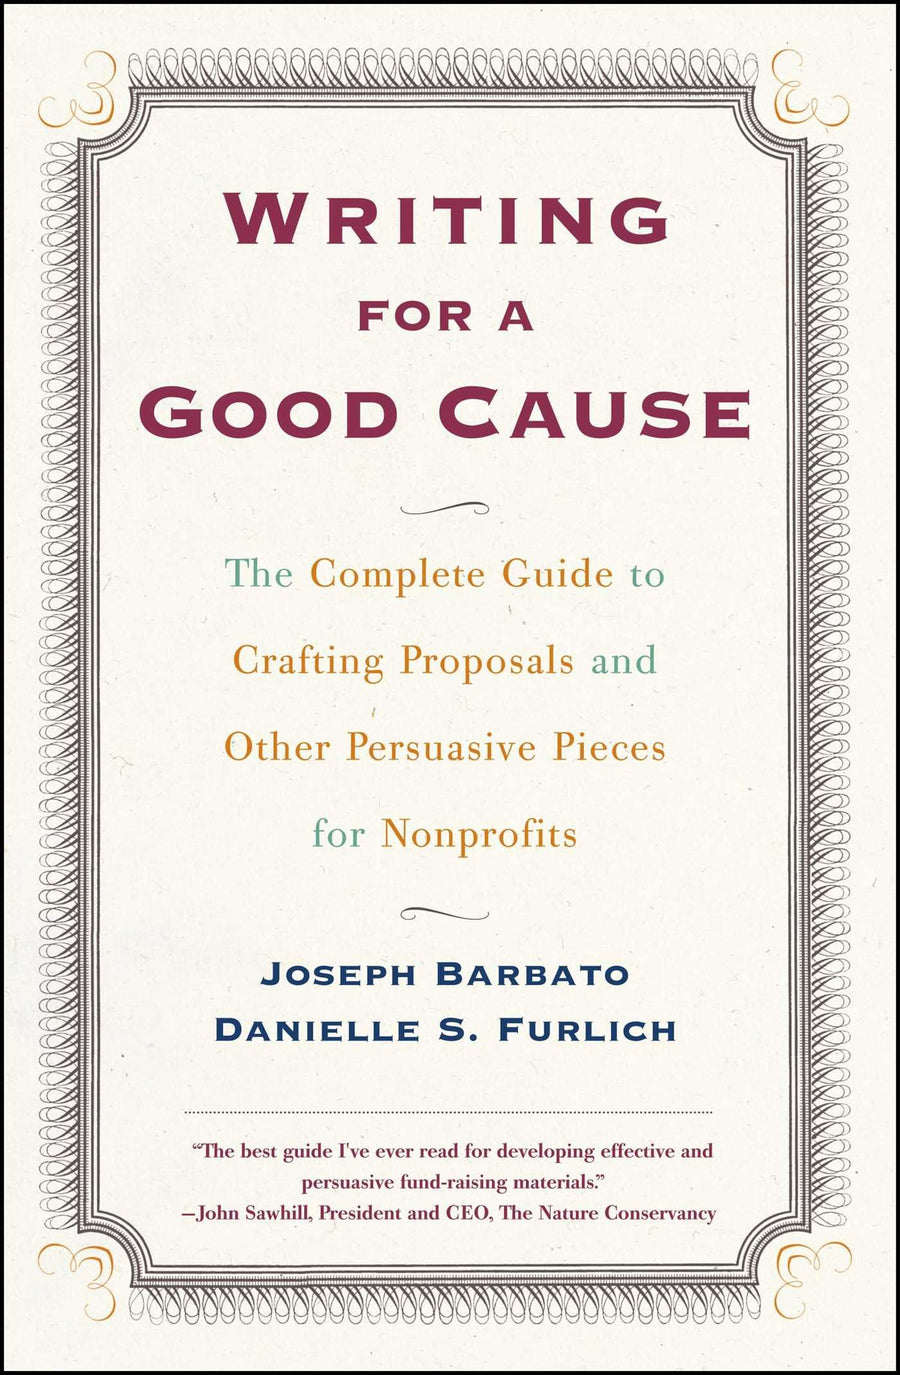 Writing for a Good Cause: The Complete Guide to Crafting Proposals and Other Persuasive Pieces for Nonprofits by Joseph Barbato & Danielle Furlich